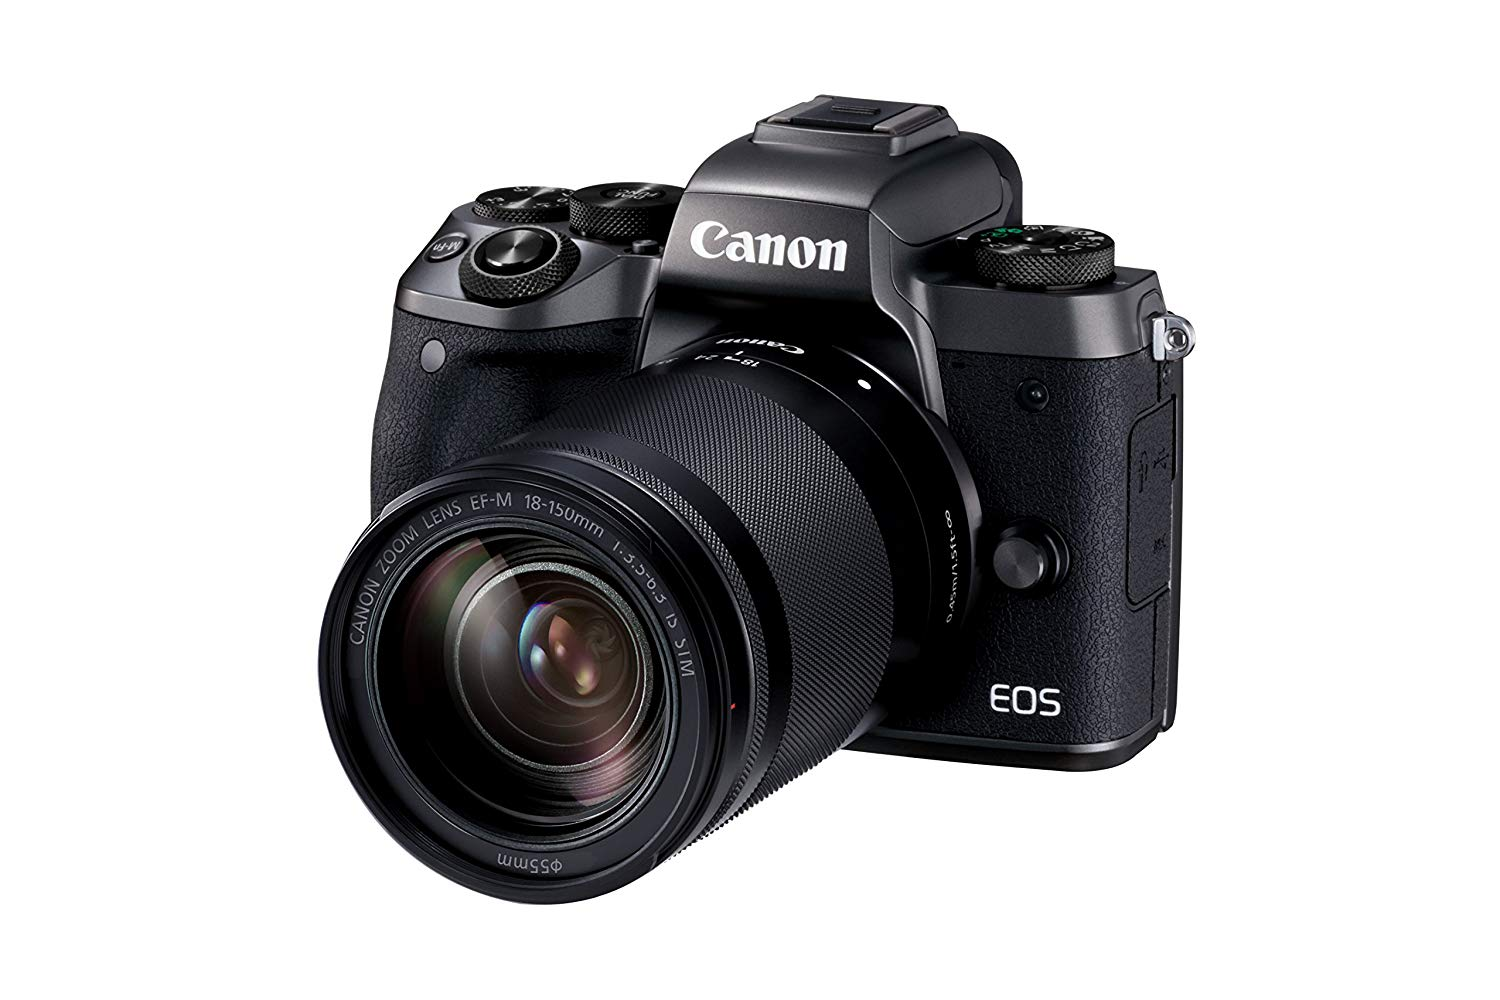 Canon EOS M5 EFM 18150mm IS STM Kit Digital Camera get best offers deals free and coupons online at buythevalue.in